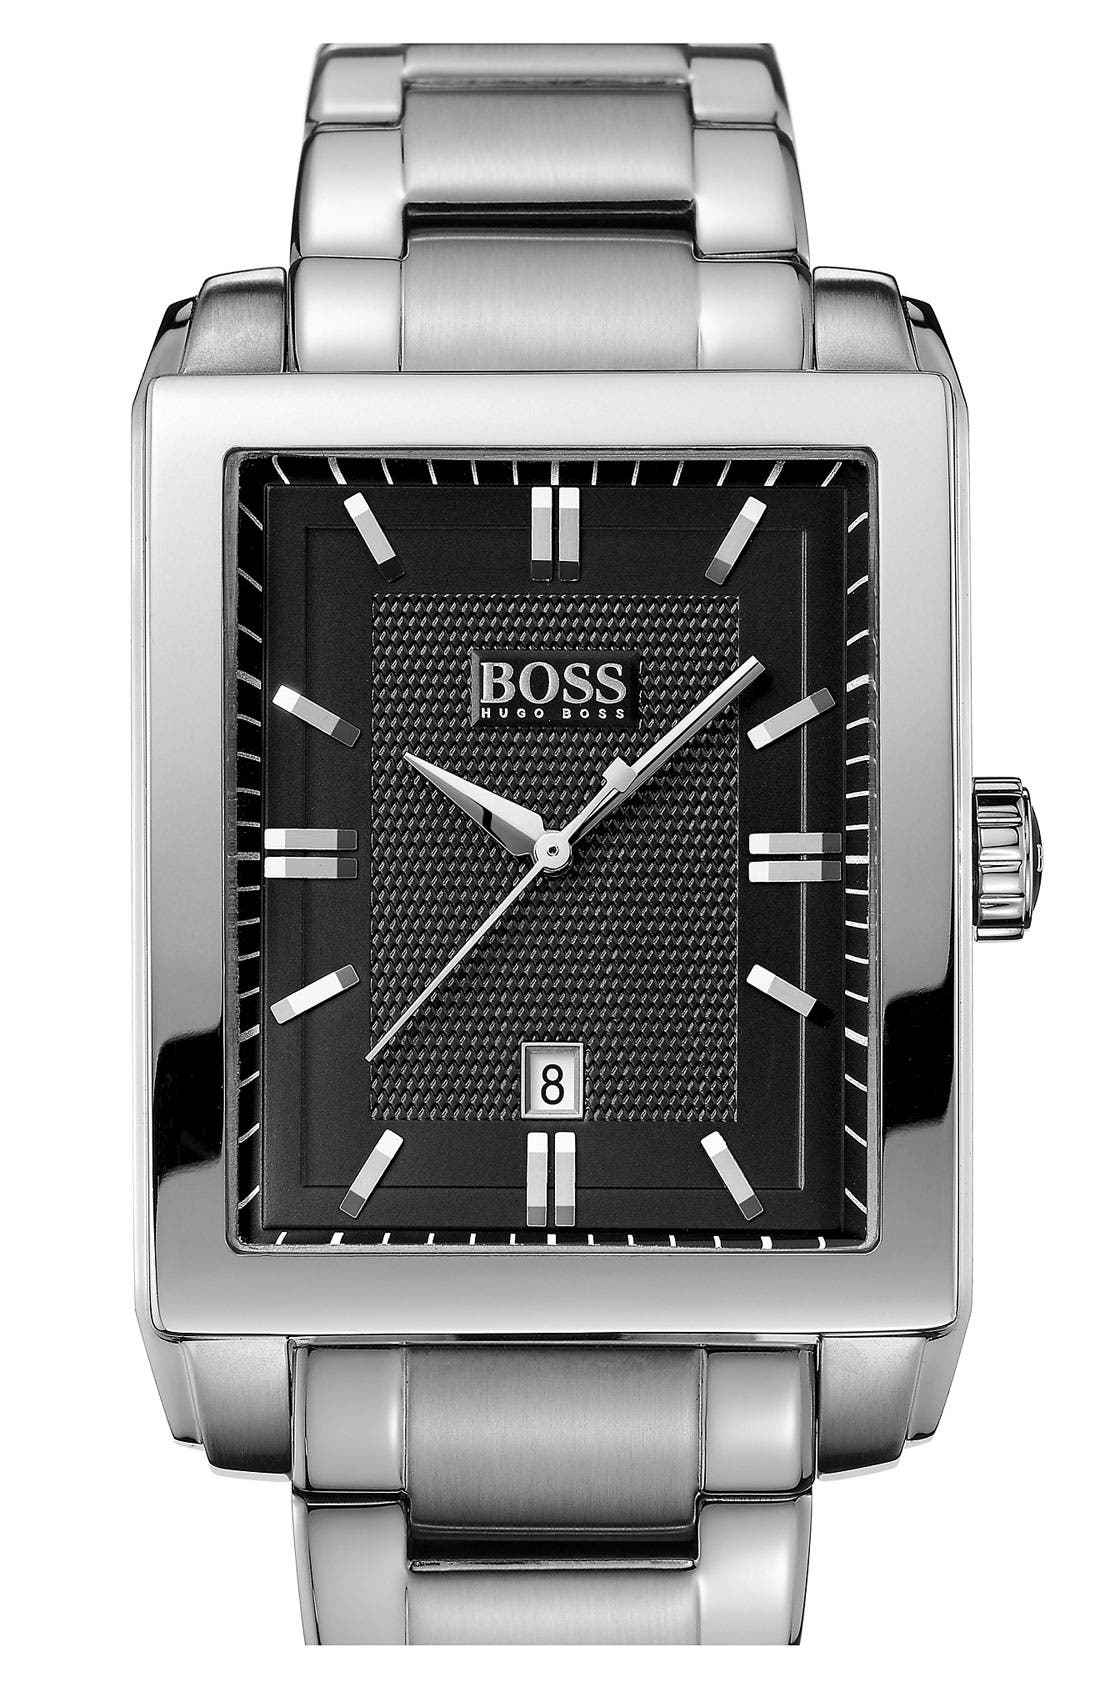 Main Image - BOSS HUGO BOSS Rectangular Bracelet Watch, 35mm x 40mm